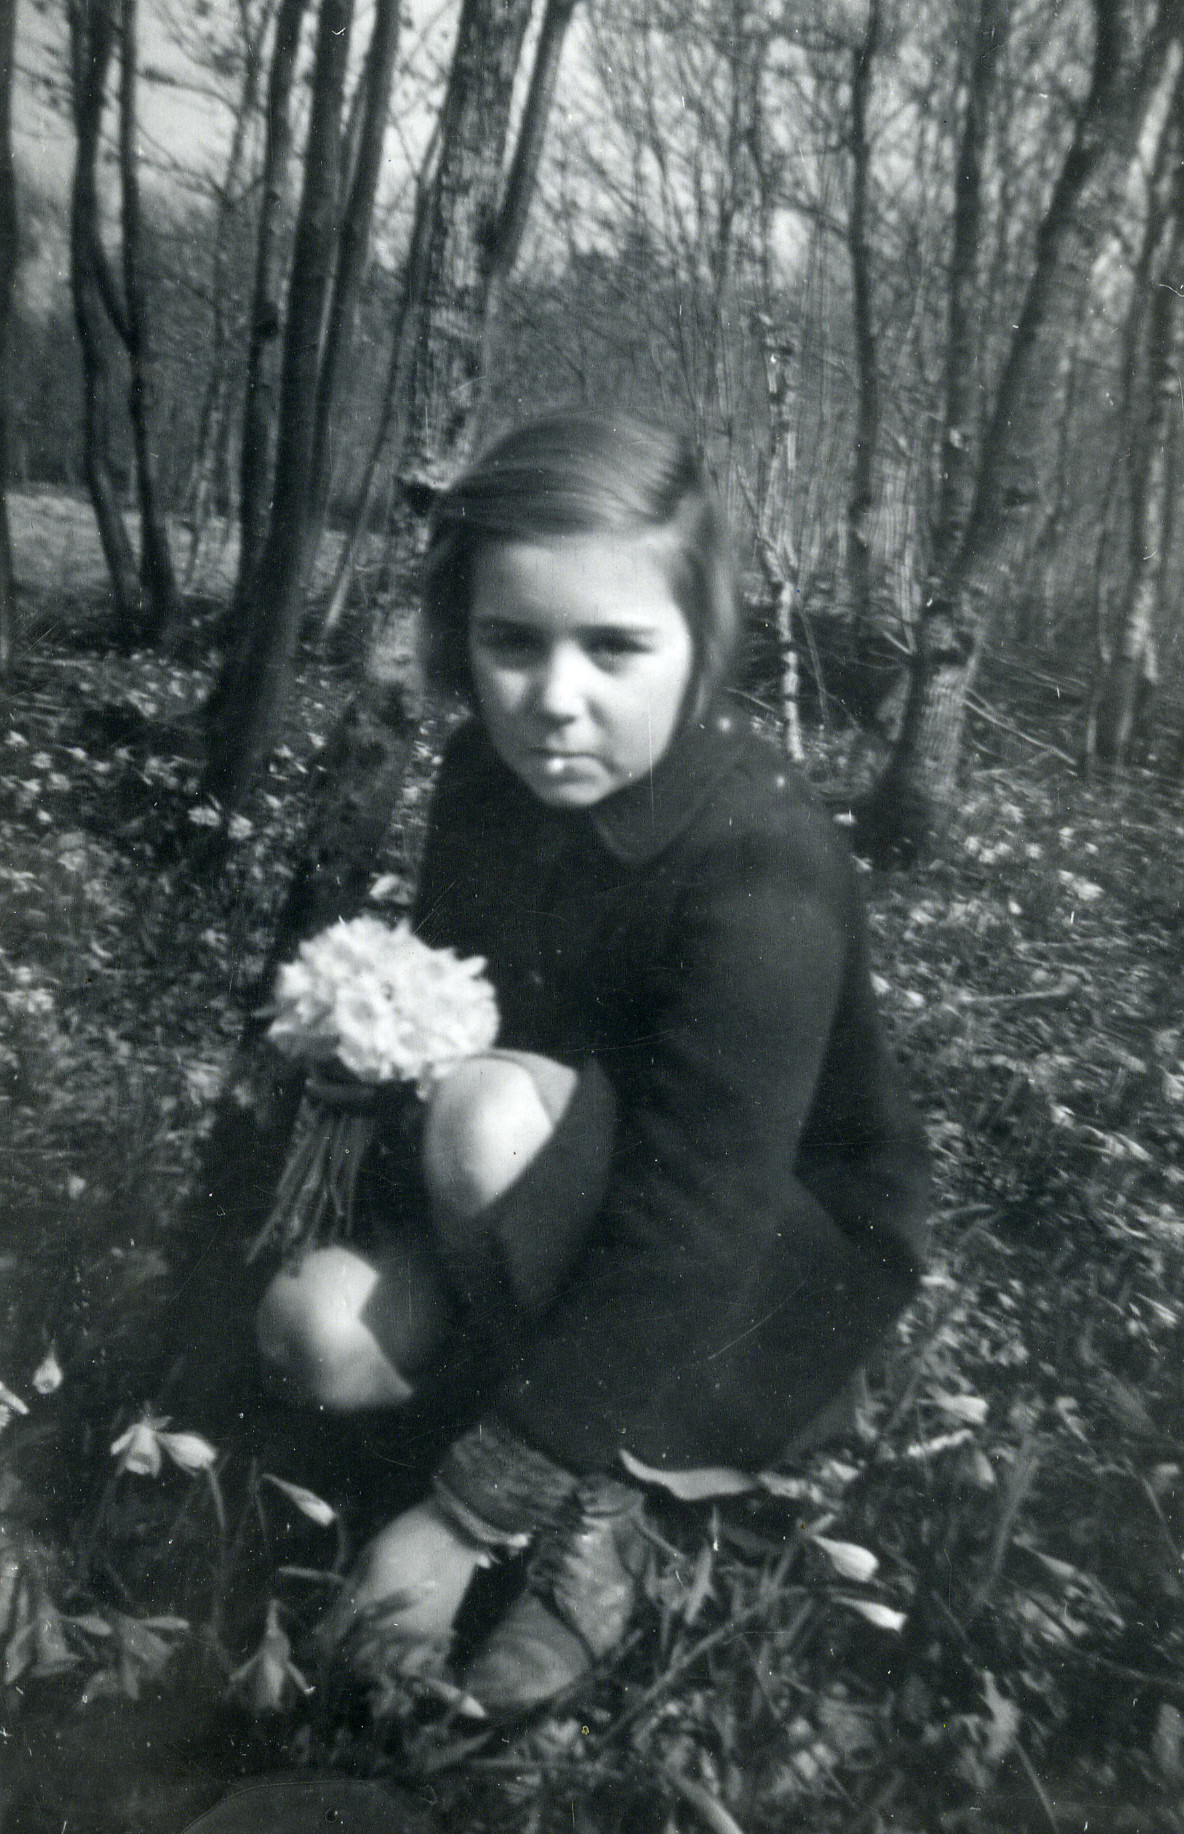 A Jewish child in hiding gathers flowers.  Pictured is Mireille Dores.